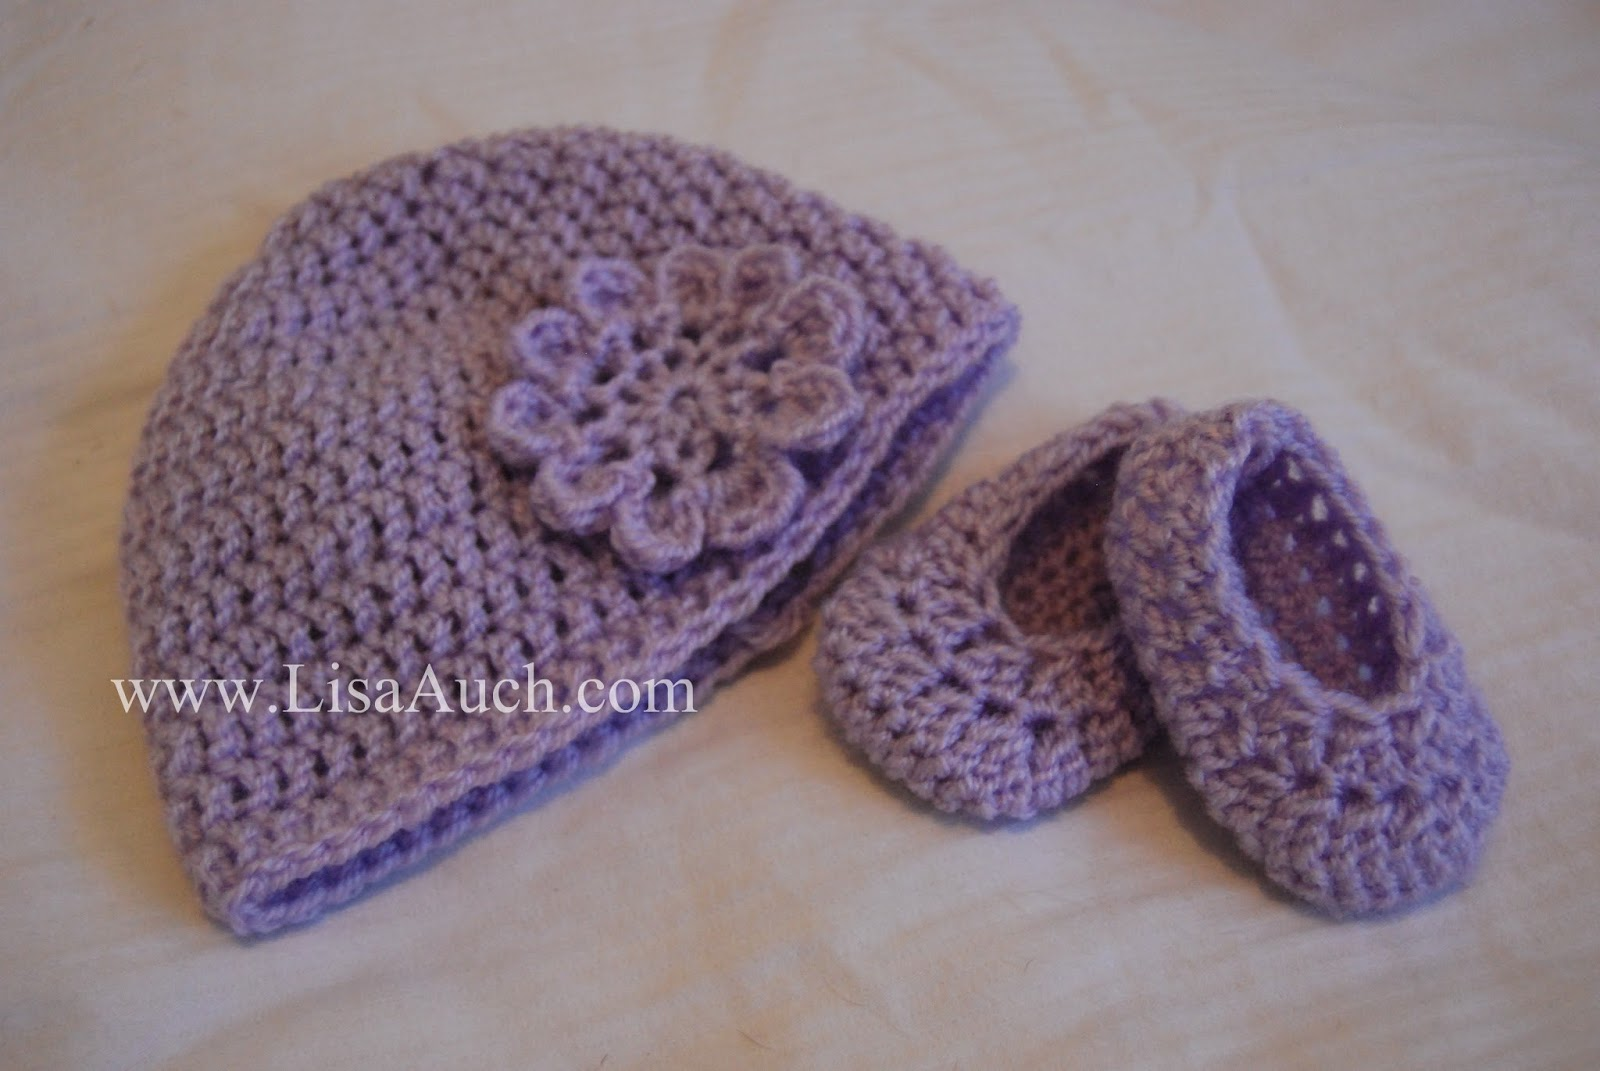 Free crochet pattern for baby toddler and child hat booties free crochet pattern for baby toddler and child hat and how to crochet matching baby booties 3 sizes baby toddler childeasy bankloansurffo Image collections